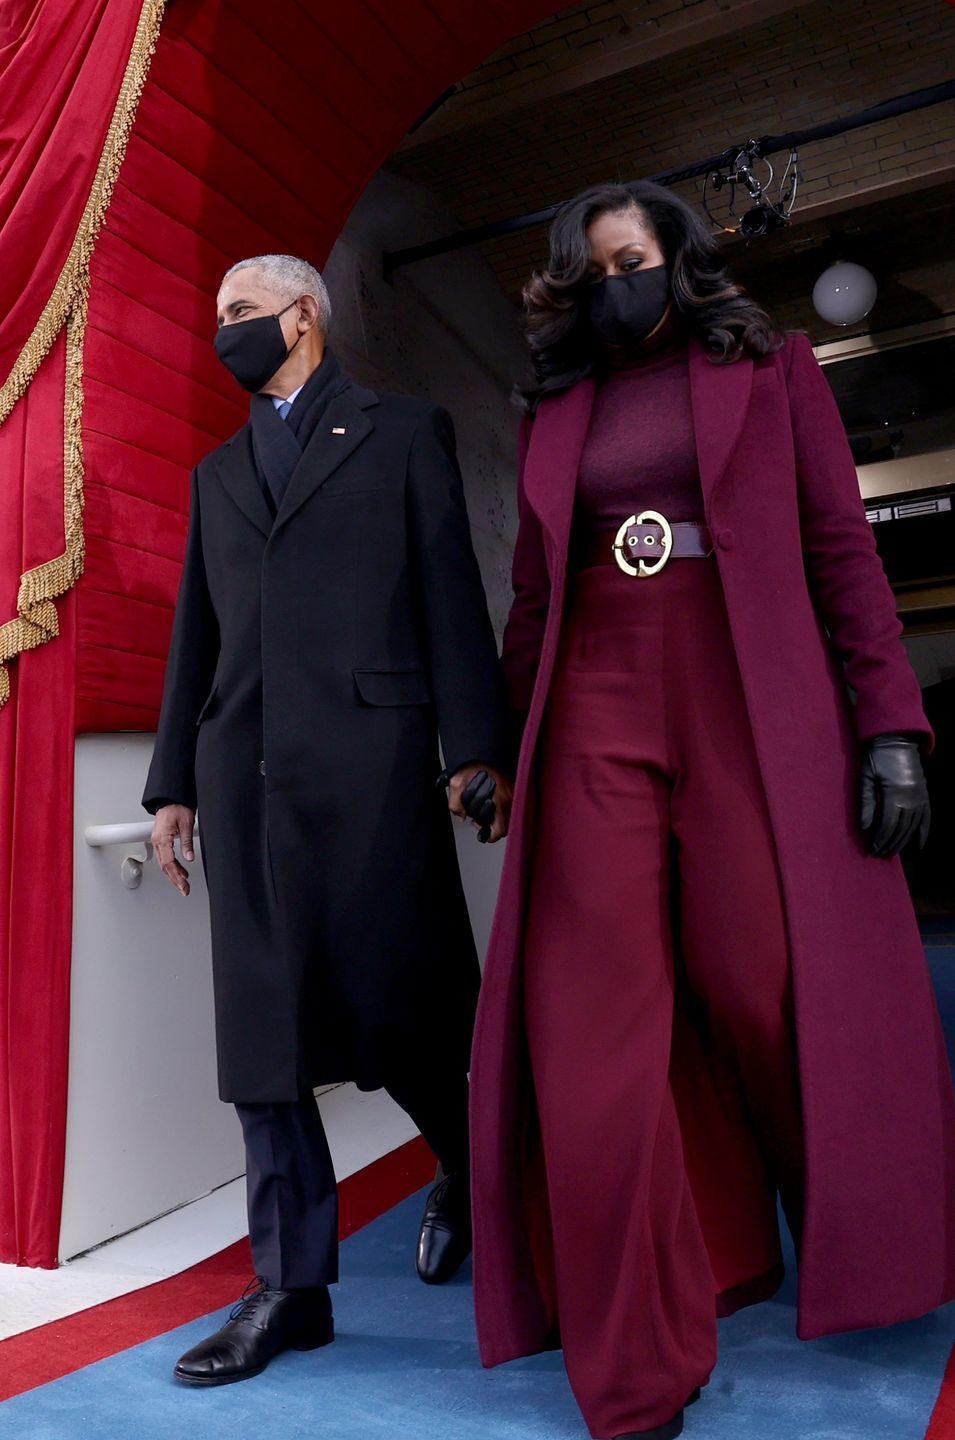 """<p>Here, former First Lady Michelle Obama commands attention and exudes confidence with a head-to-toe burgundy ensemble by <a href=""""https://sergiohudson.com"""" rel=""""nofollow noopener"""" target=""""_blank"""" data-ylk=""""slk:Sergio Hudson"""" class=""""link rapid-noclick-resp"""">Sergio Hudson</a>, a Black designer who hails from South Carolina. The turtleneck, belt, coat, and wide-legged pants make an impactful impression thanks to their monochromatic palette, and she finishes off the statement outfit with <a href=""""https://www.stuartweitzman.com/sale/all-sale/?ogmap=SEM%7CRTN%7CGOOG%7CSTND%7Cc%7CSITEWIDE%7CMain%7CText_Brand_NonCore_ALL%7CGender%7Cstu%20weitzman%7C1497596101%7C63329787523%7CUS&gclid=CjwKCAiAxp-ABhALEiwAXm6IyXBaIDyN9b84xavP7fpdwMUMZEKsXM3PewJpPK3wuUP4hHzsX1HqHhoCjAEQAvD_BwE"""" rel=""""nofollow noopener"""" target=""""_blank"""" data-ylk=""""slk:Stuart Weitzman"""" class=""""link rapid-noclick-resp"""">Stuart Weitzman</a> boots, leather gloves, and a silk mask.</p>"""